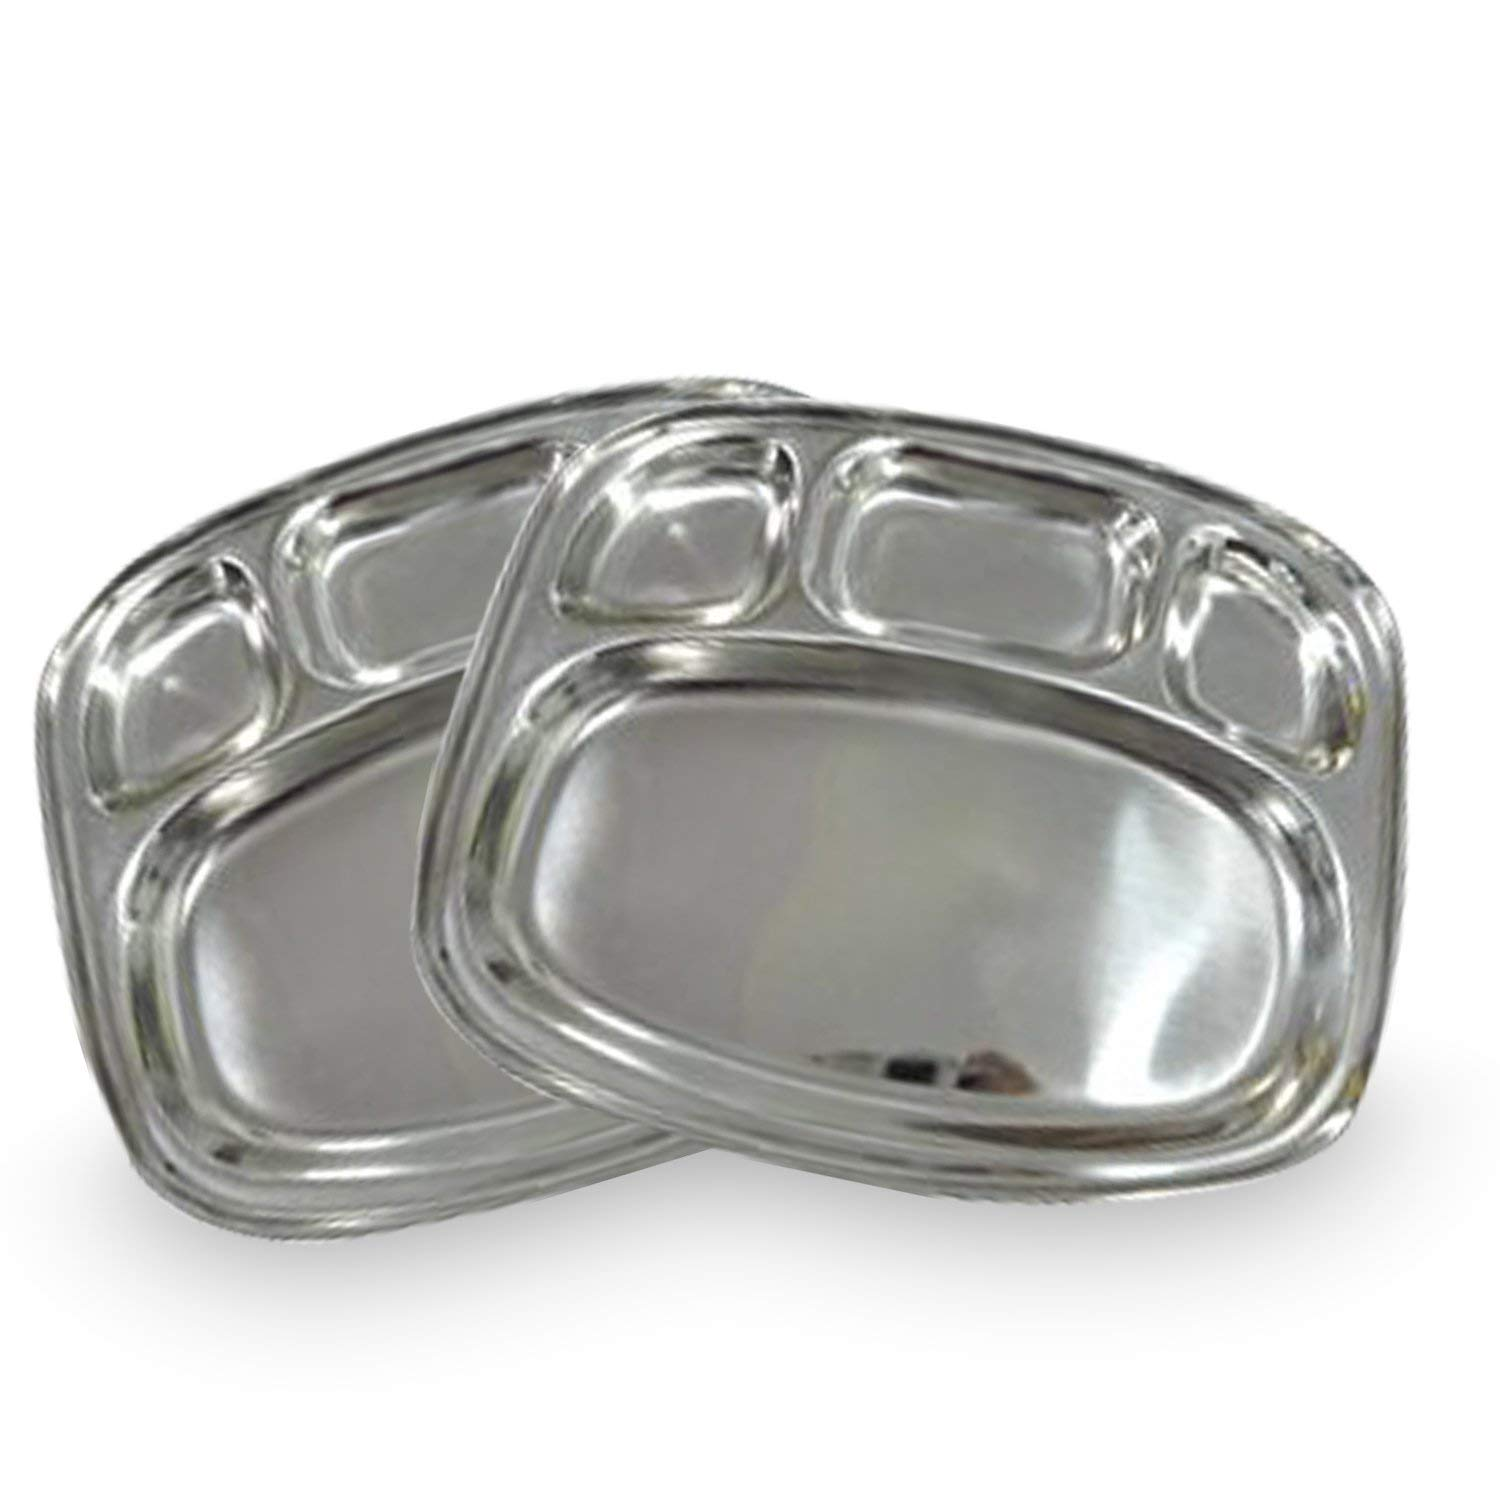 IndiaBigShop Stainless Steel Oval Shape 4 compartment Thali Mess Trays For Lunch and Dinner or Every Day Use Set of 2-13 Inch